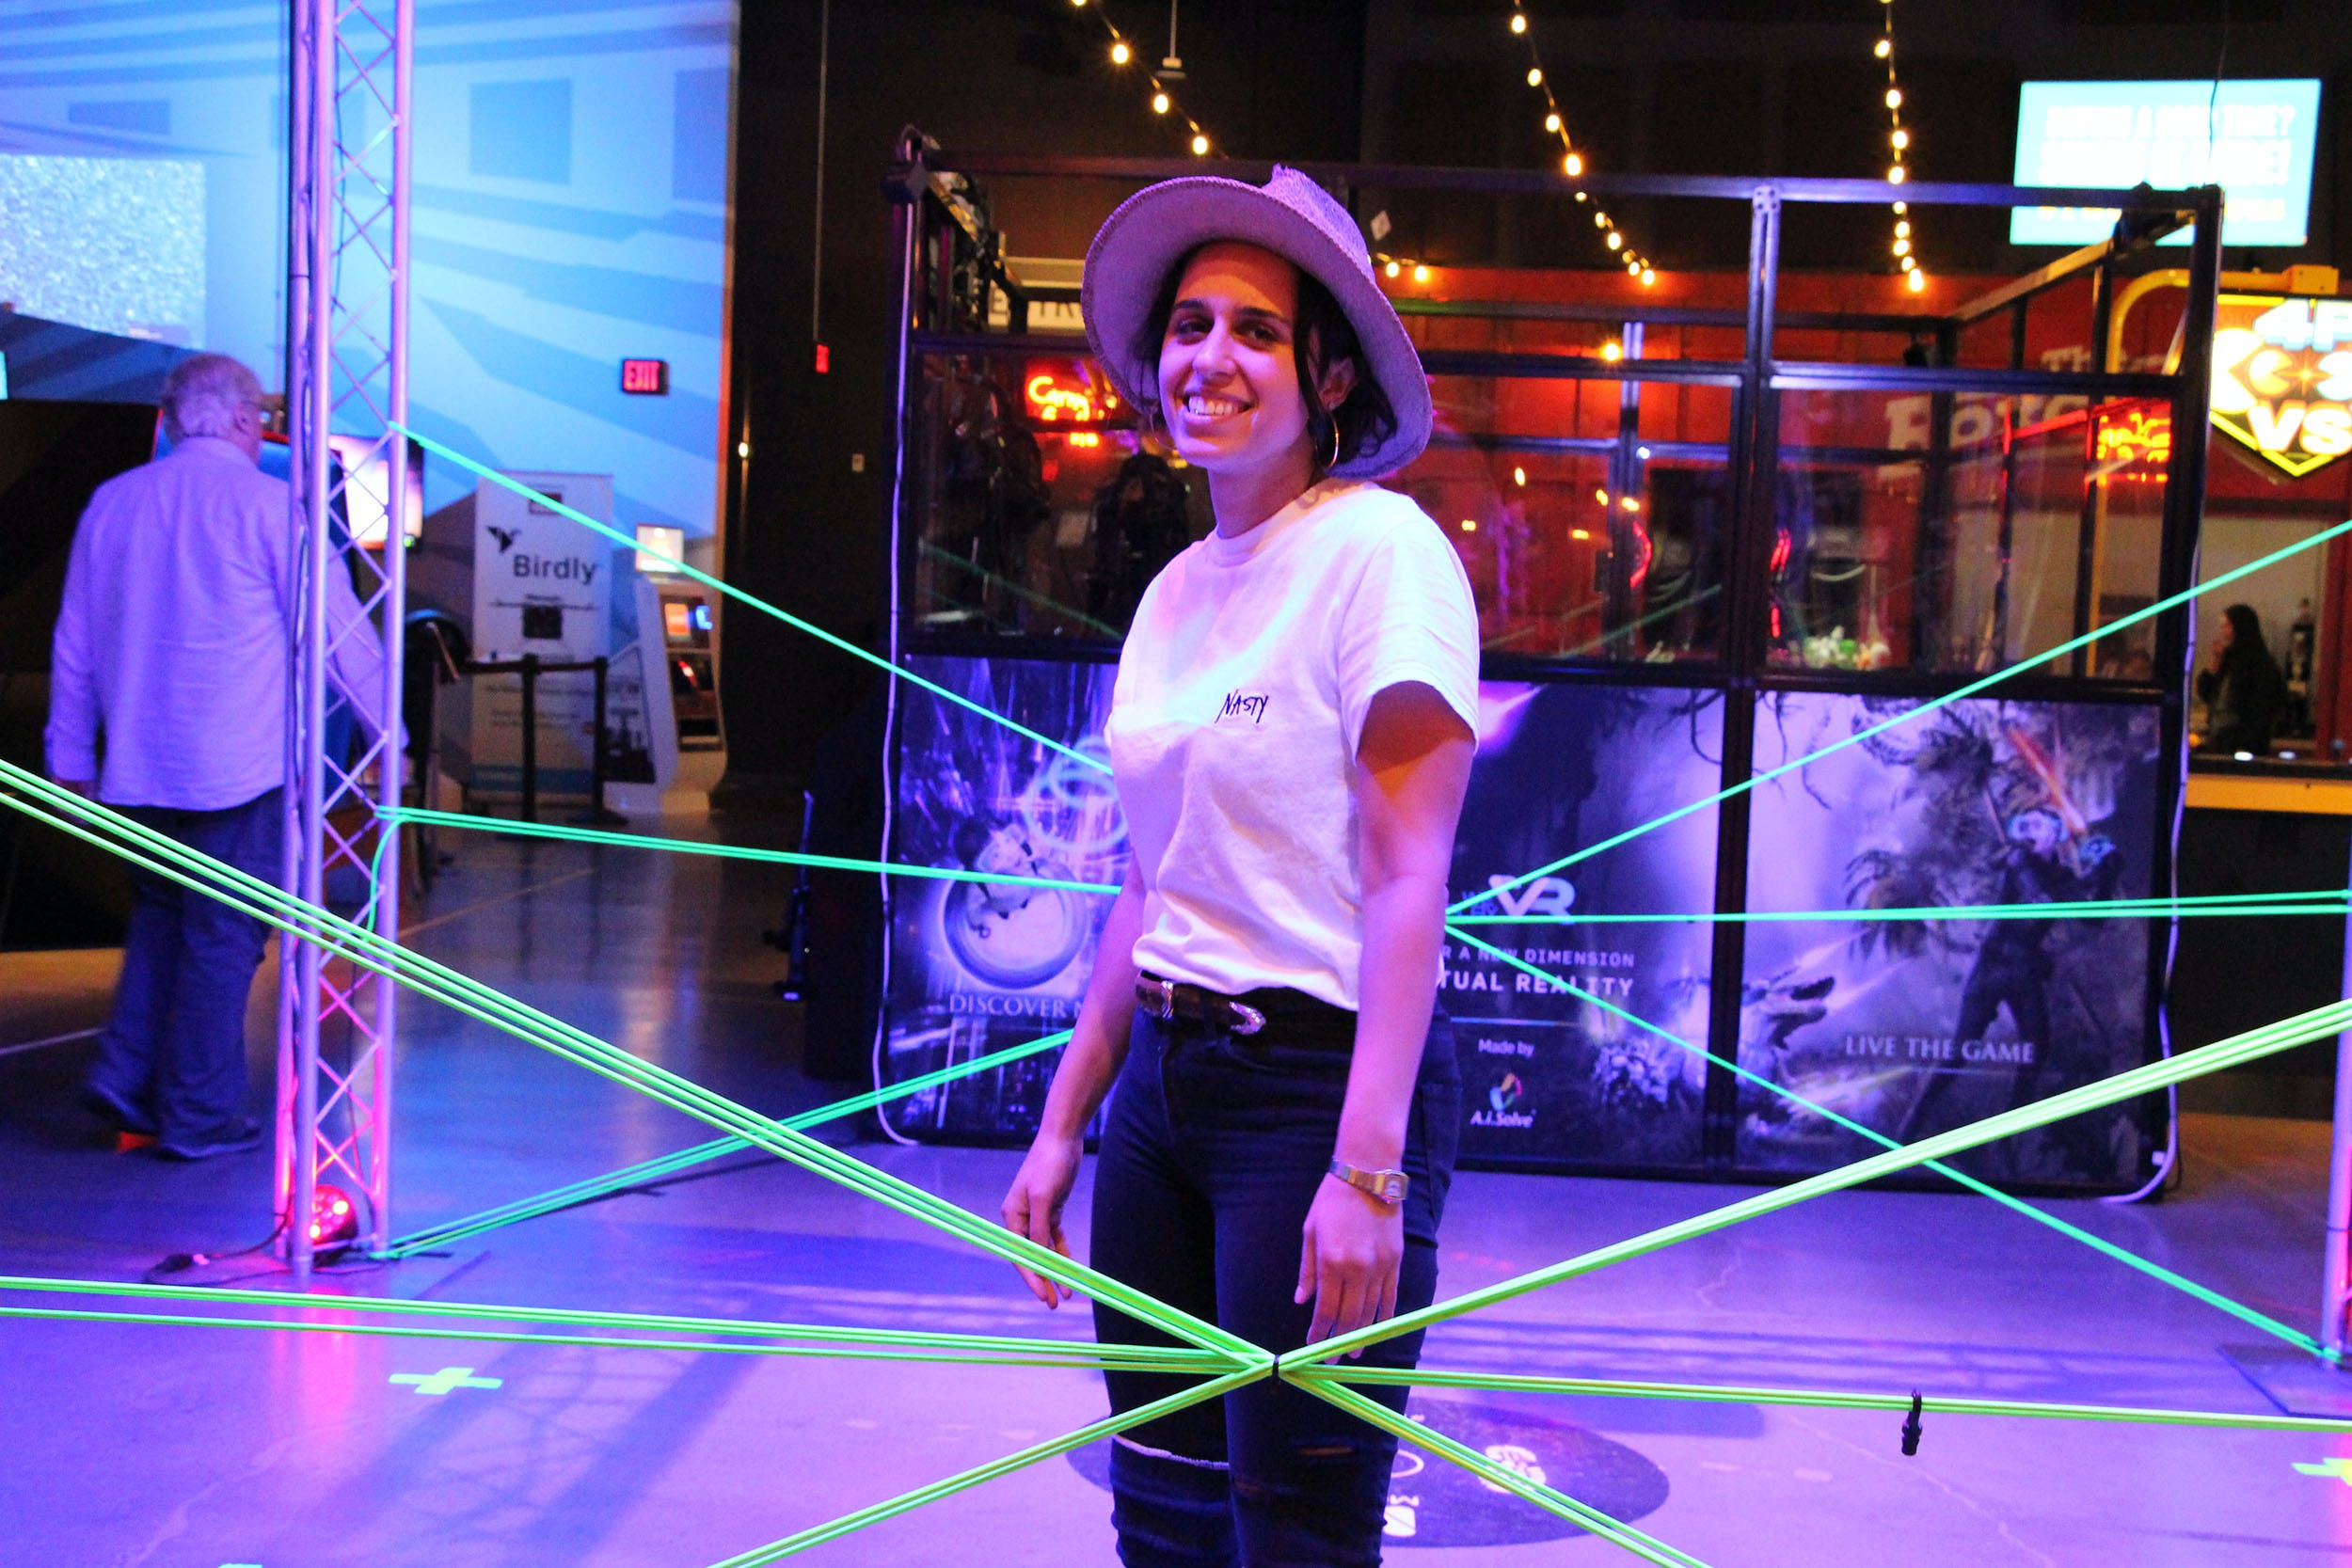 A woman stands in a neon-lighted display